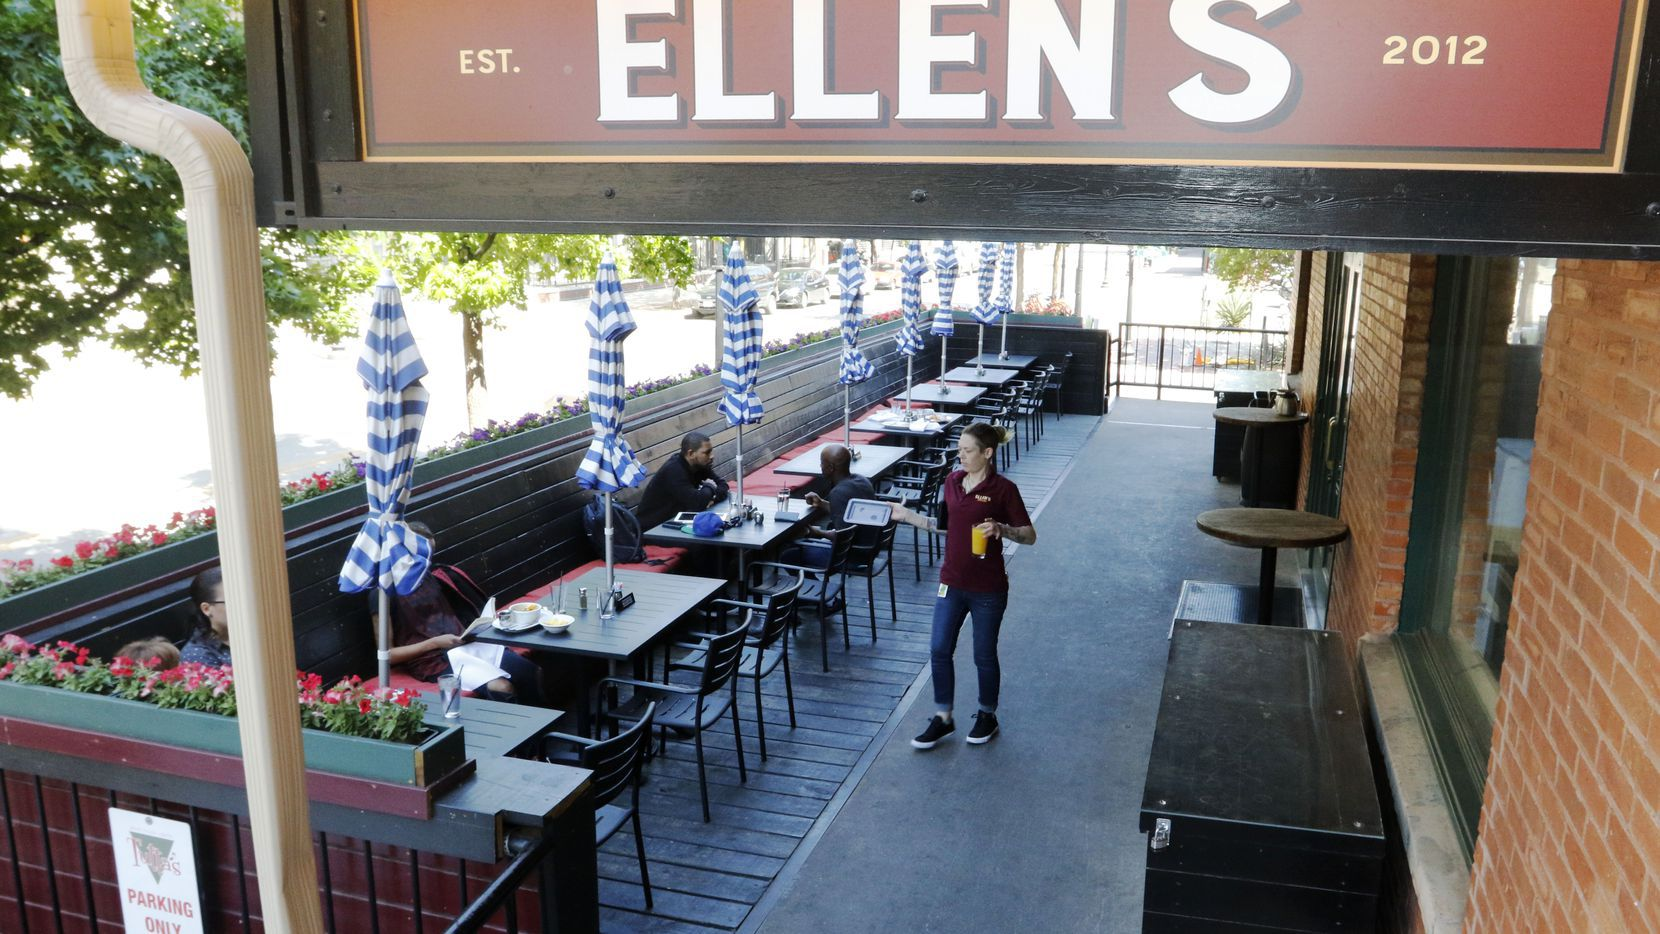 As many as six Ellen's Restaurants may be open by the end of 2021, says partner Joe Groves.